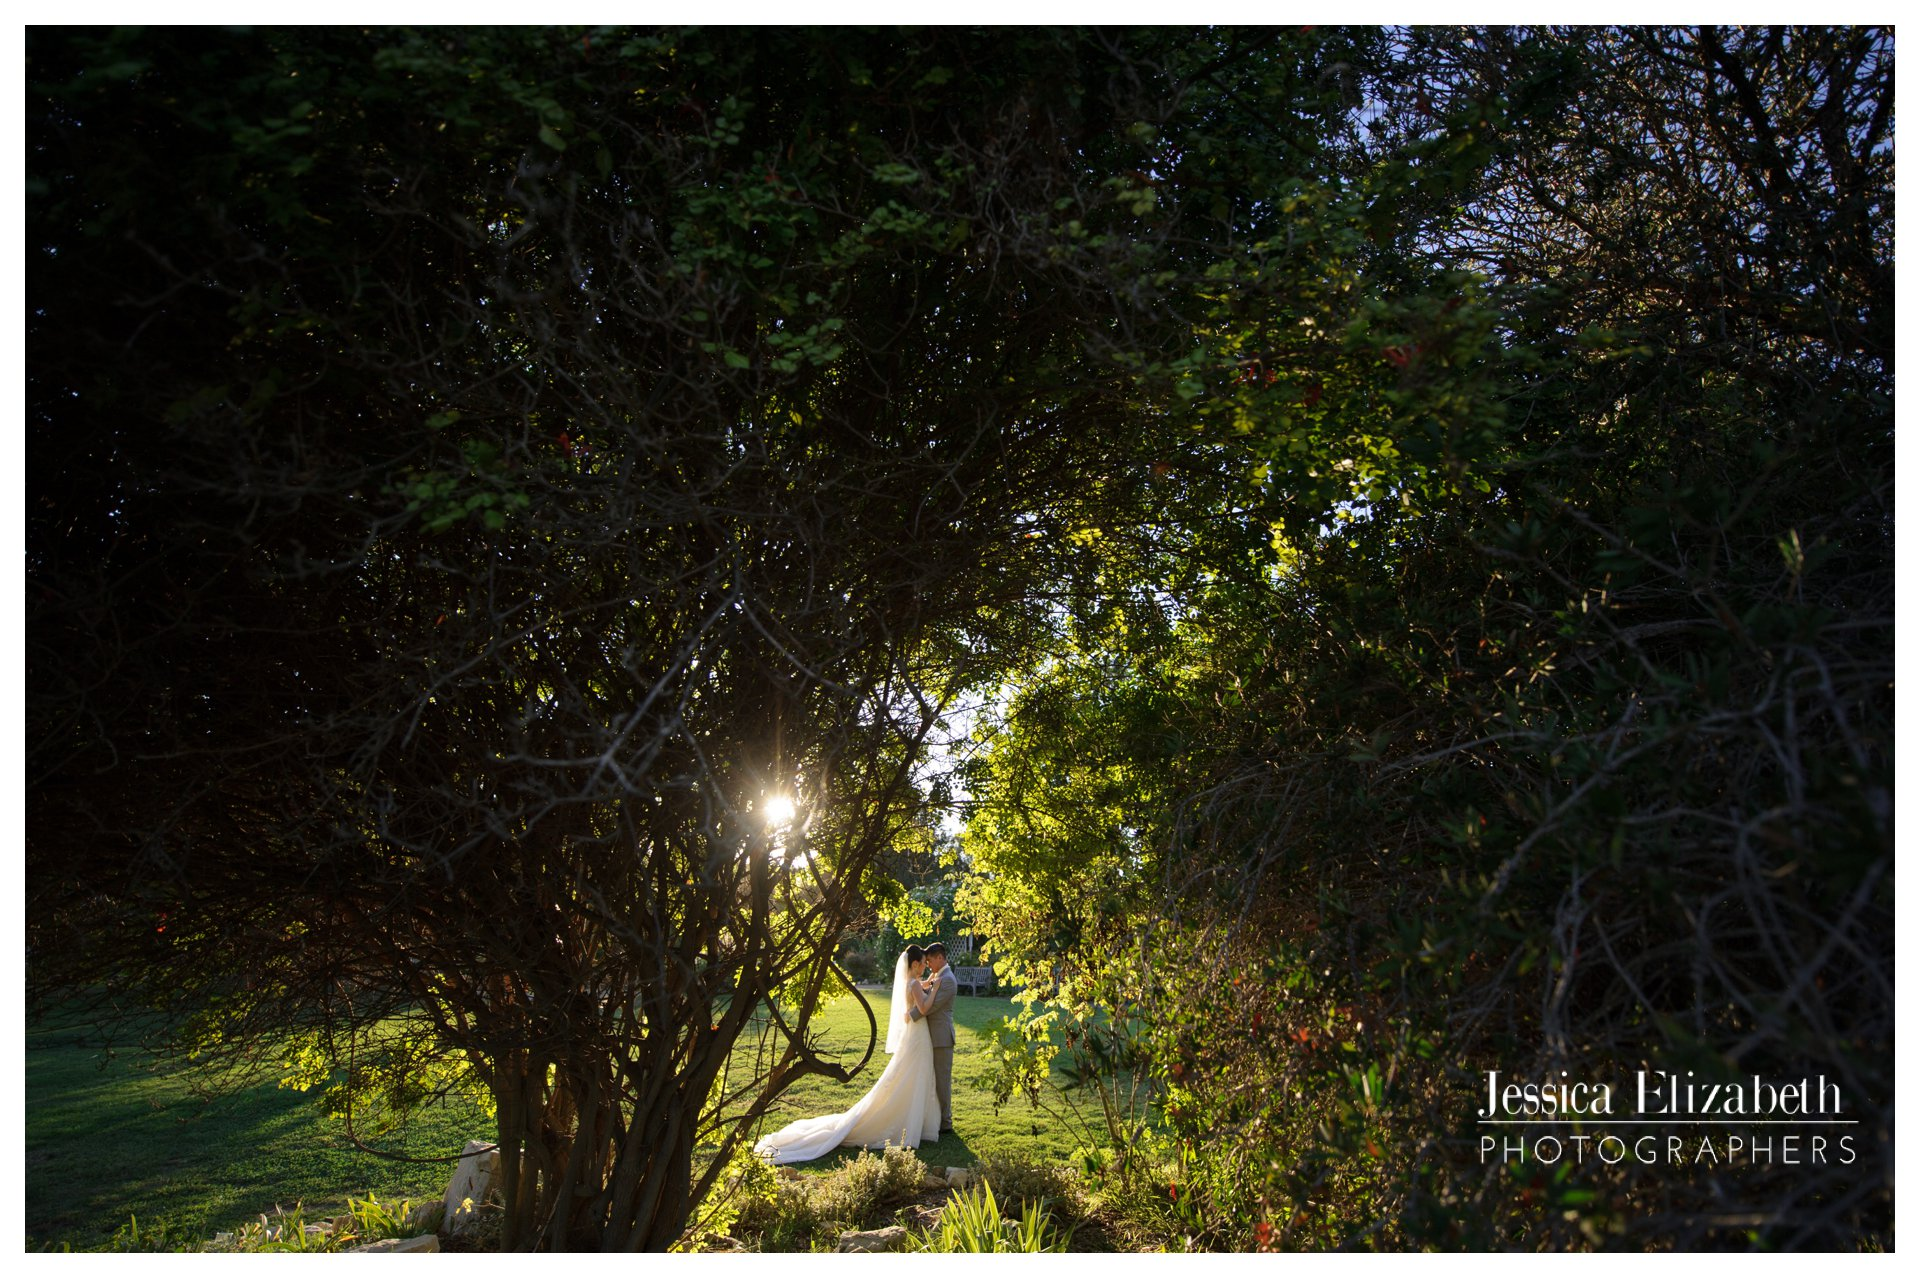 30-South-Coast-Botanic-Garden-Palos-Verdes-Wedding-Photography-by-Jessica-Elizabeth1.jpg